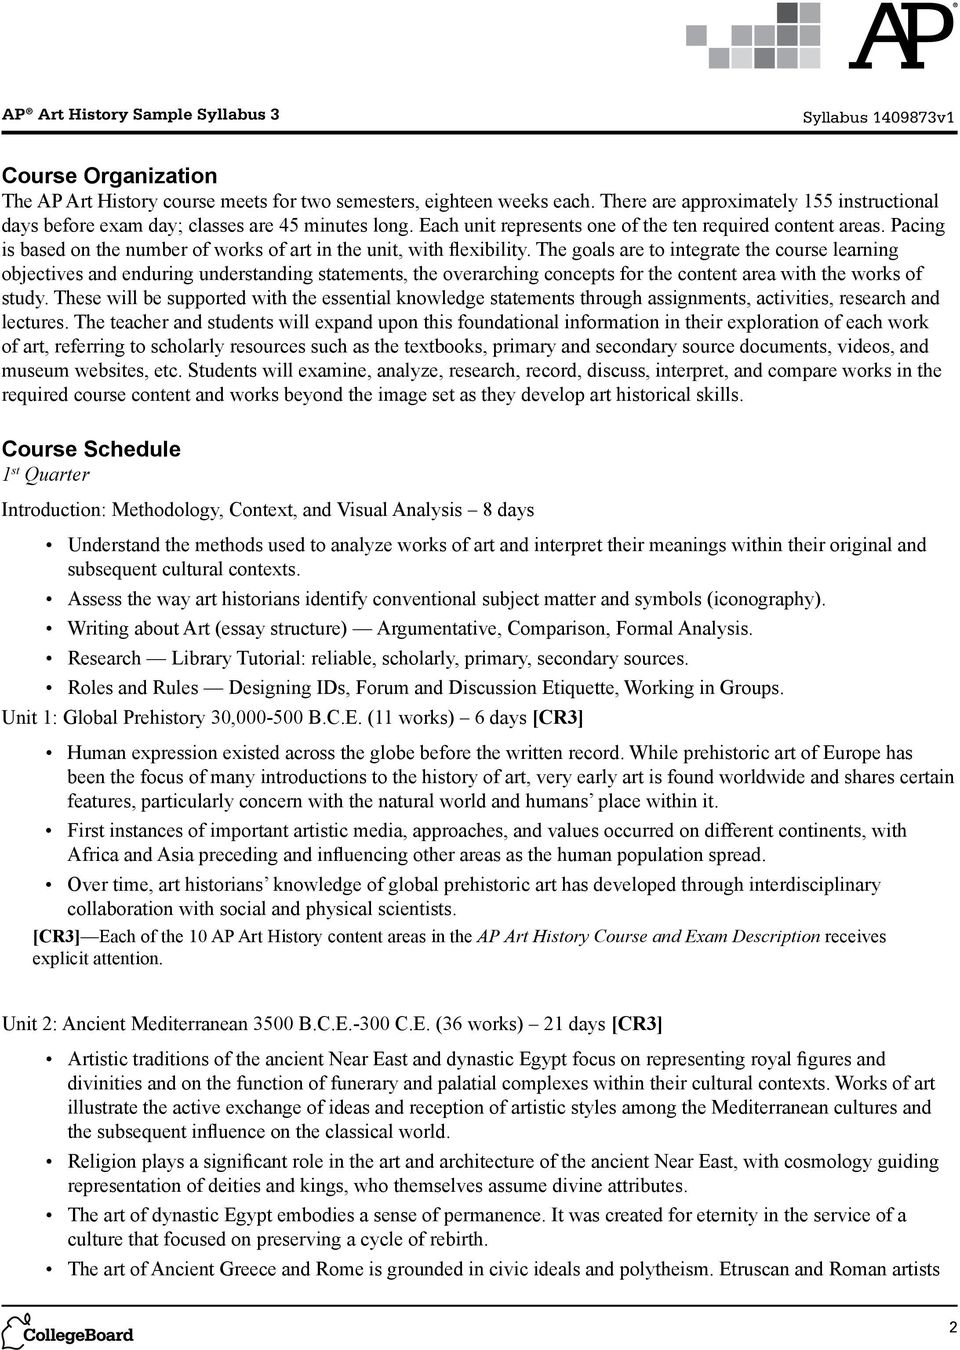 ap art history sample syllabus pdf the goals are to integrate the course learning objectives and enduring understanding statements the overarching